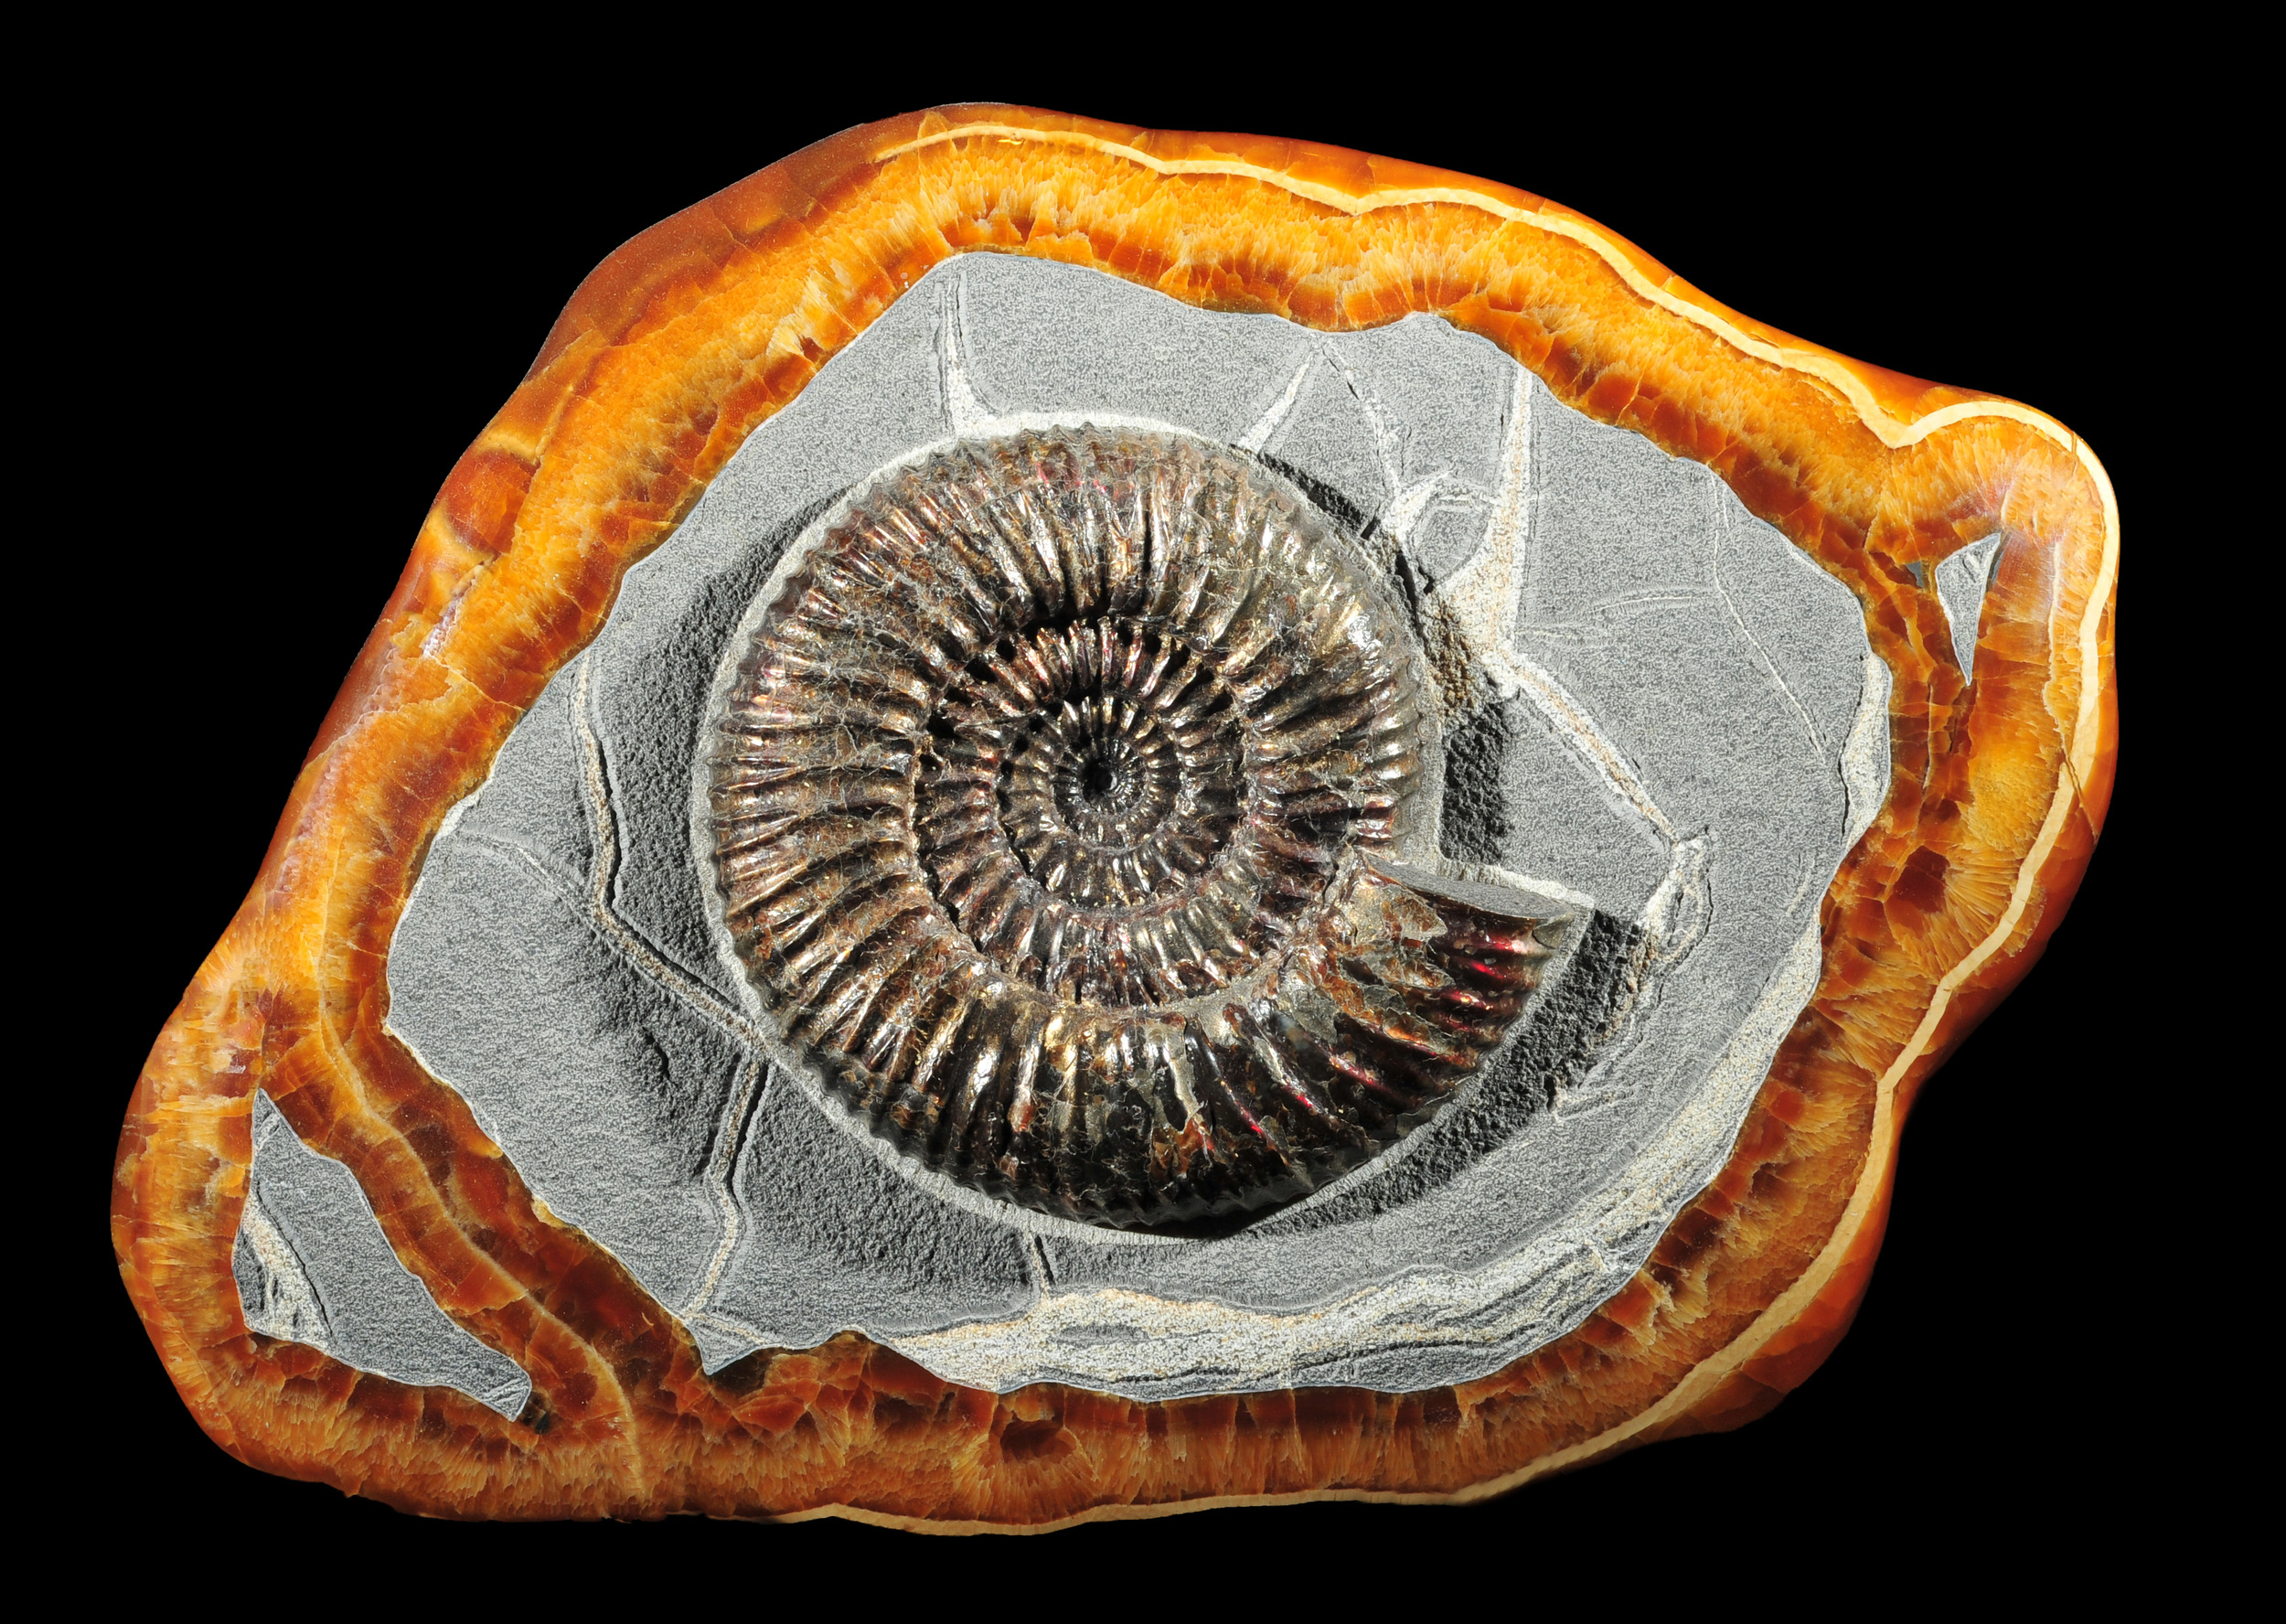 Pyritized Ammonite in Septerian